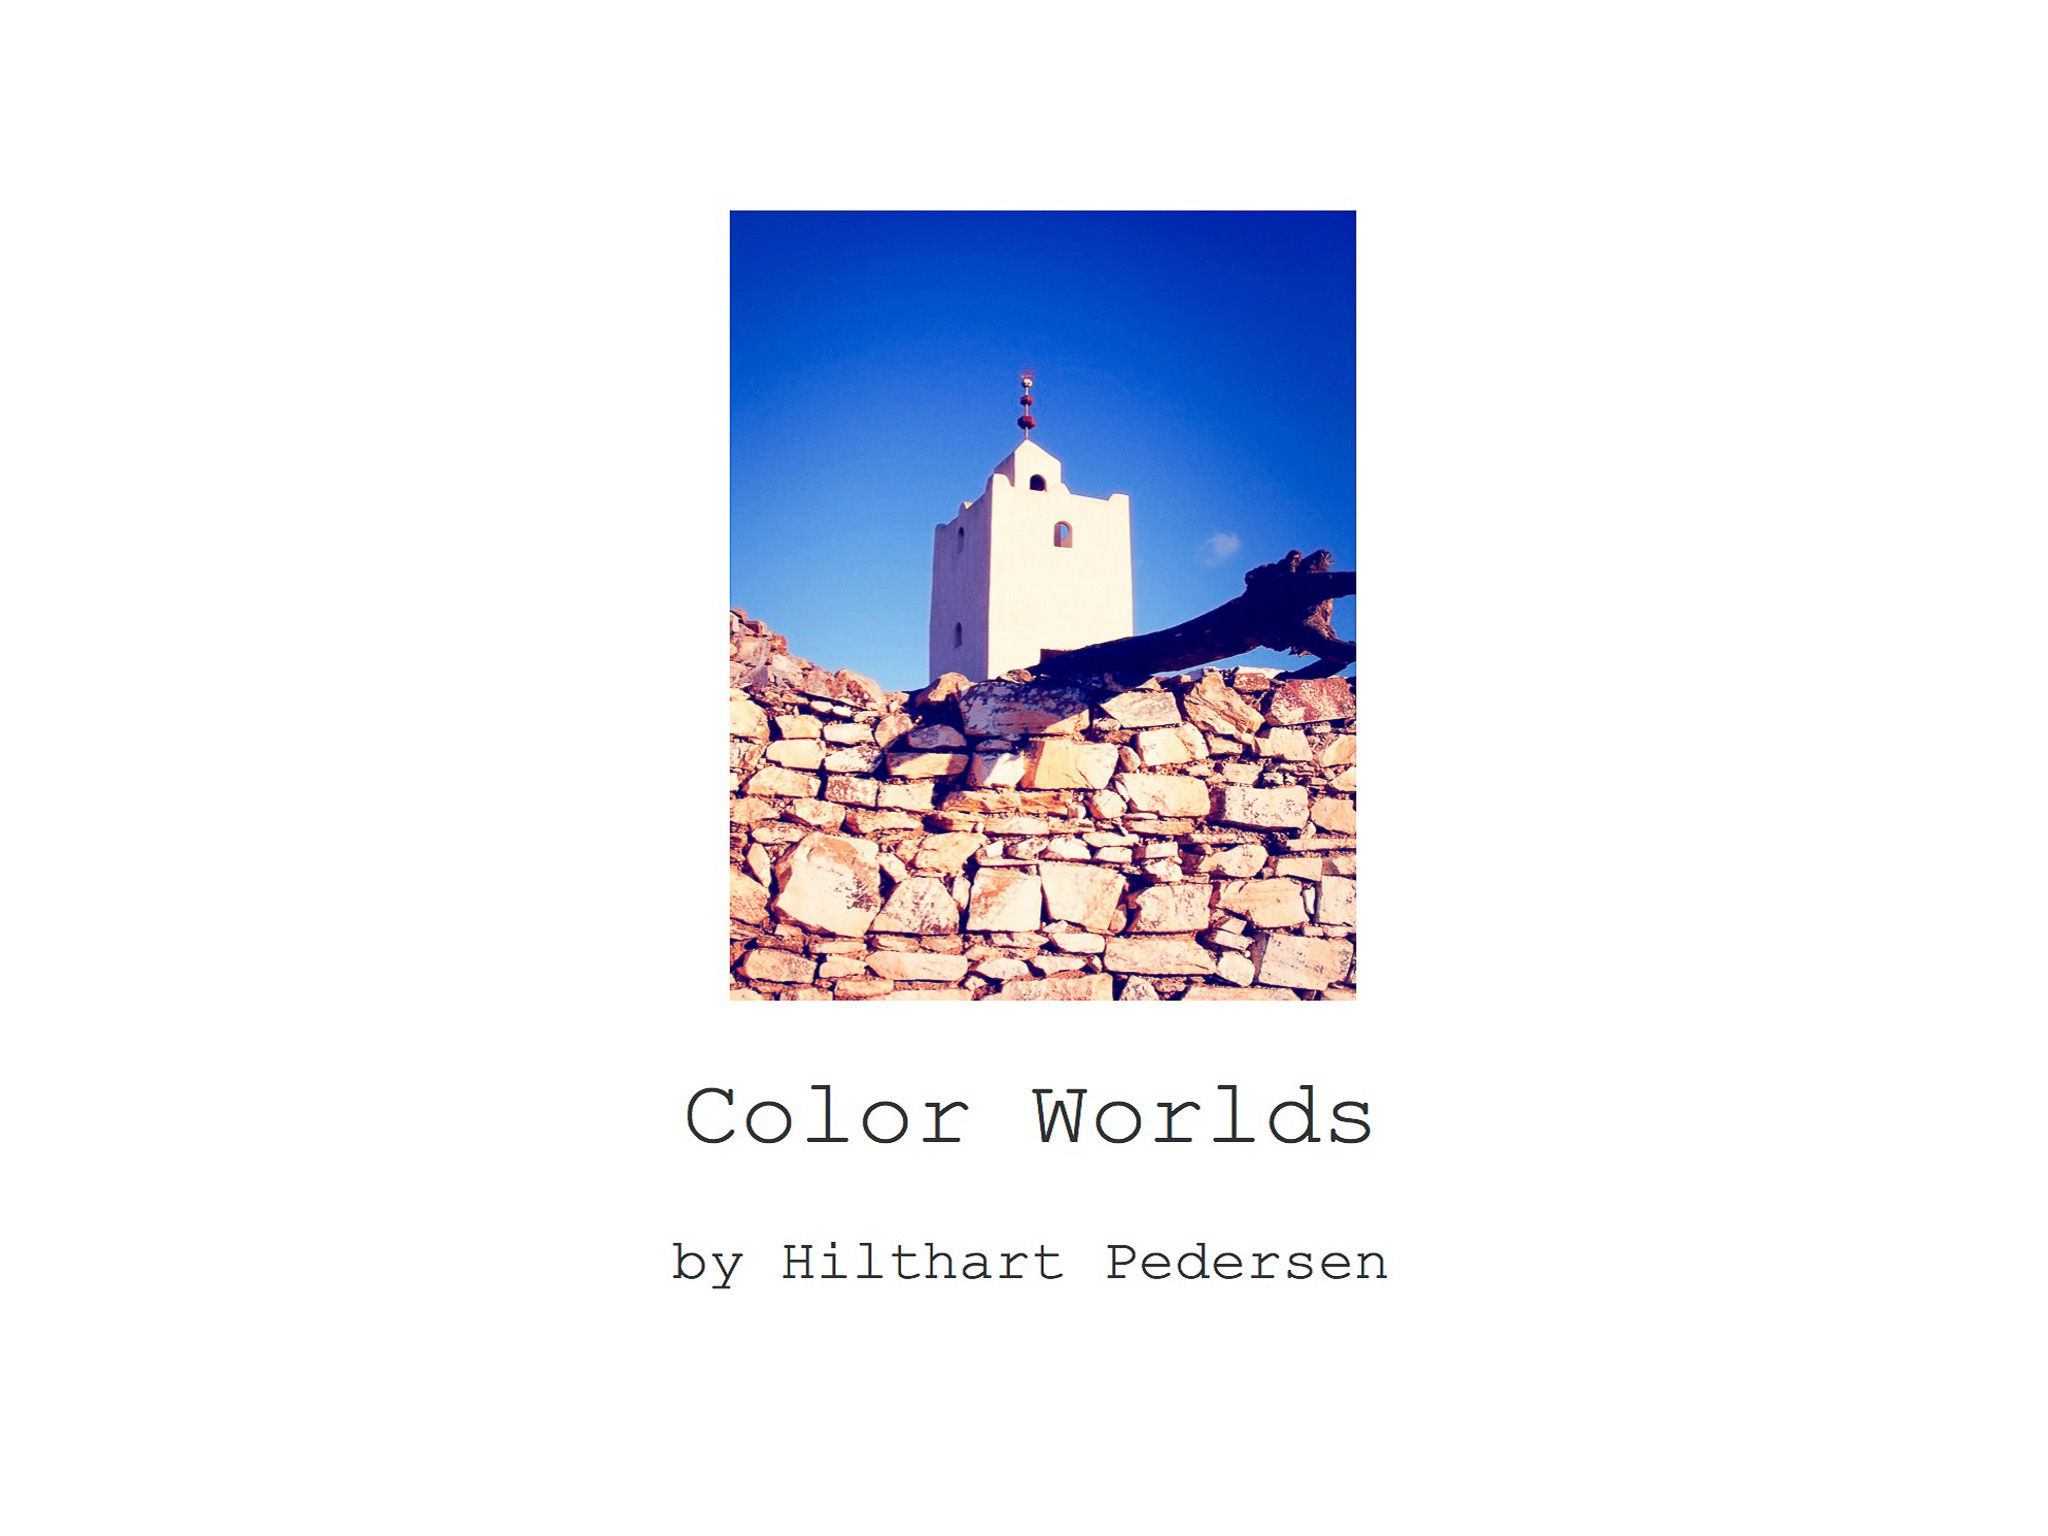 Color Worlds Einband.jpg